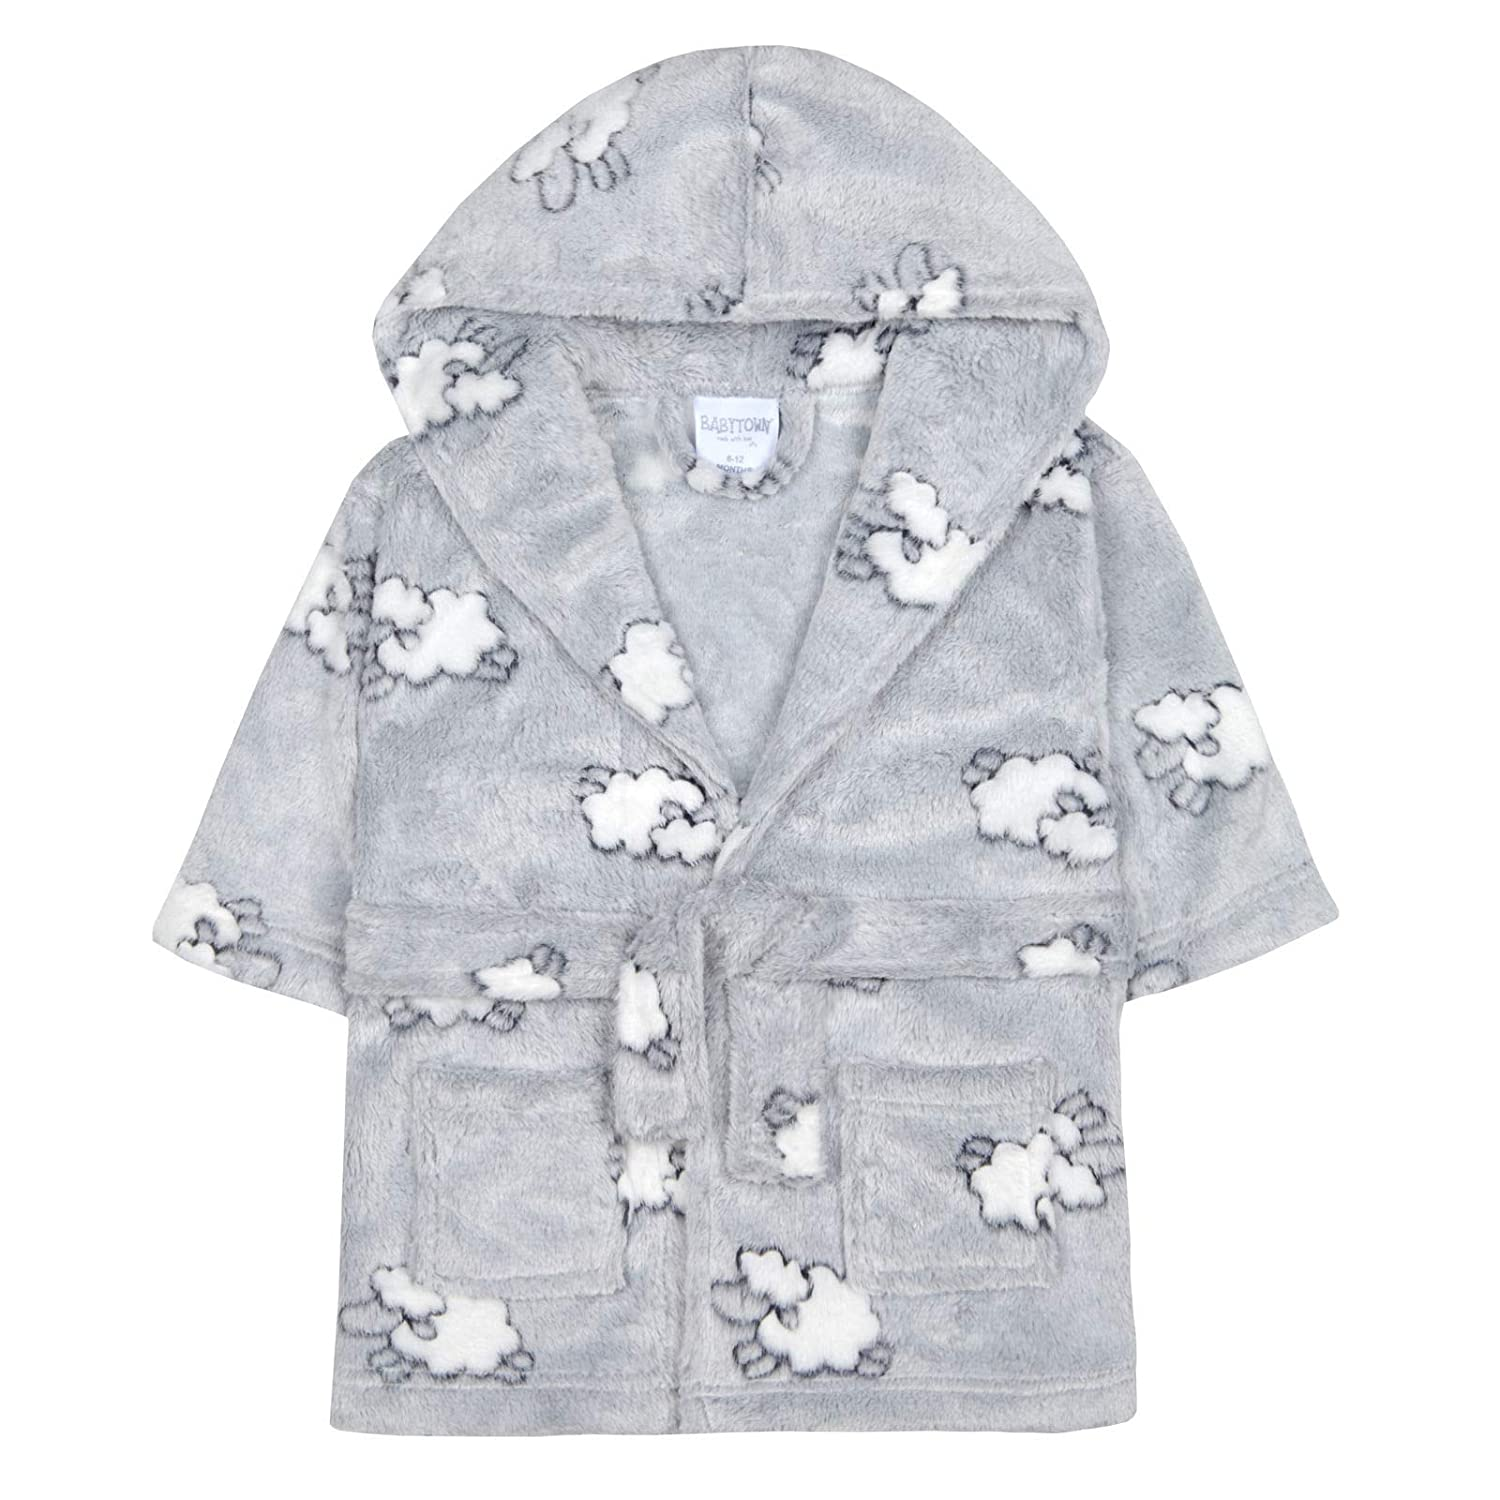 Baby Boys /& Girls Unisex Dressing Gown Ages 6-24 Months Soft Plush Flannel Fleece Hooded Bath Robe